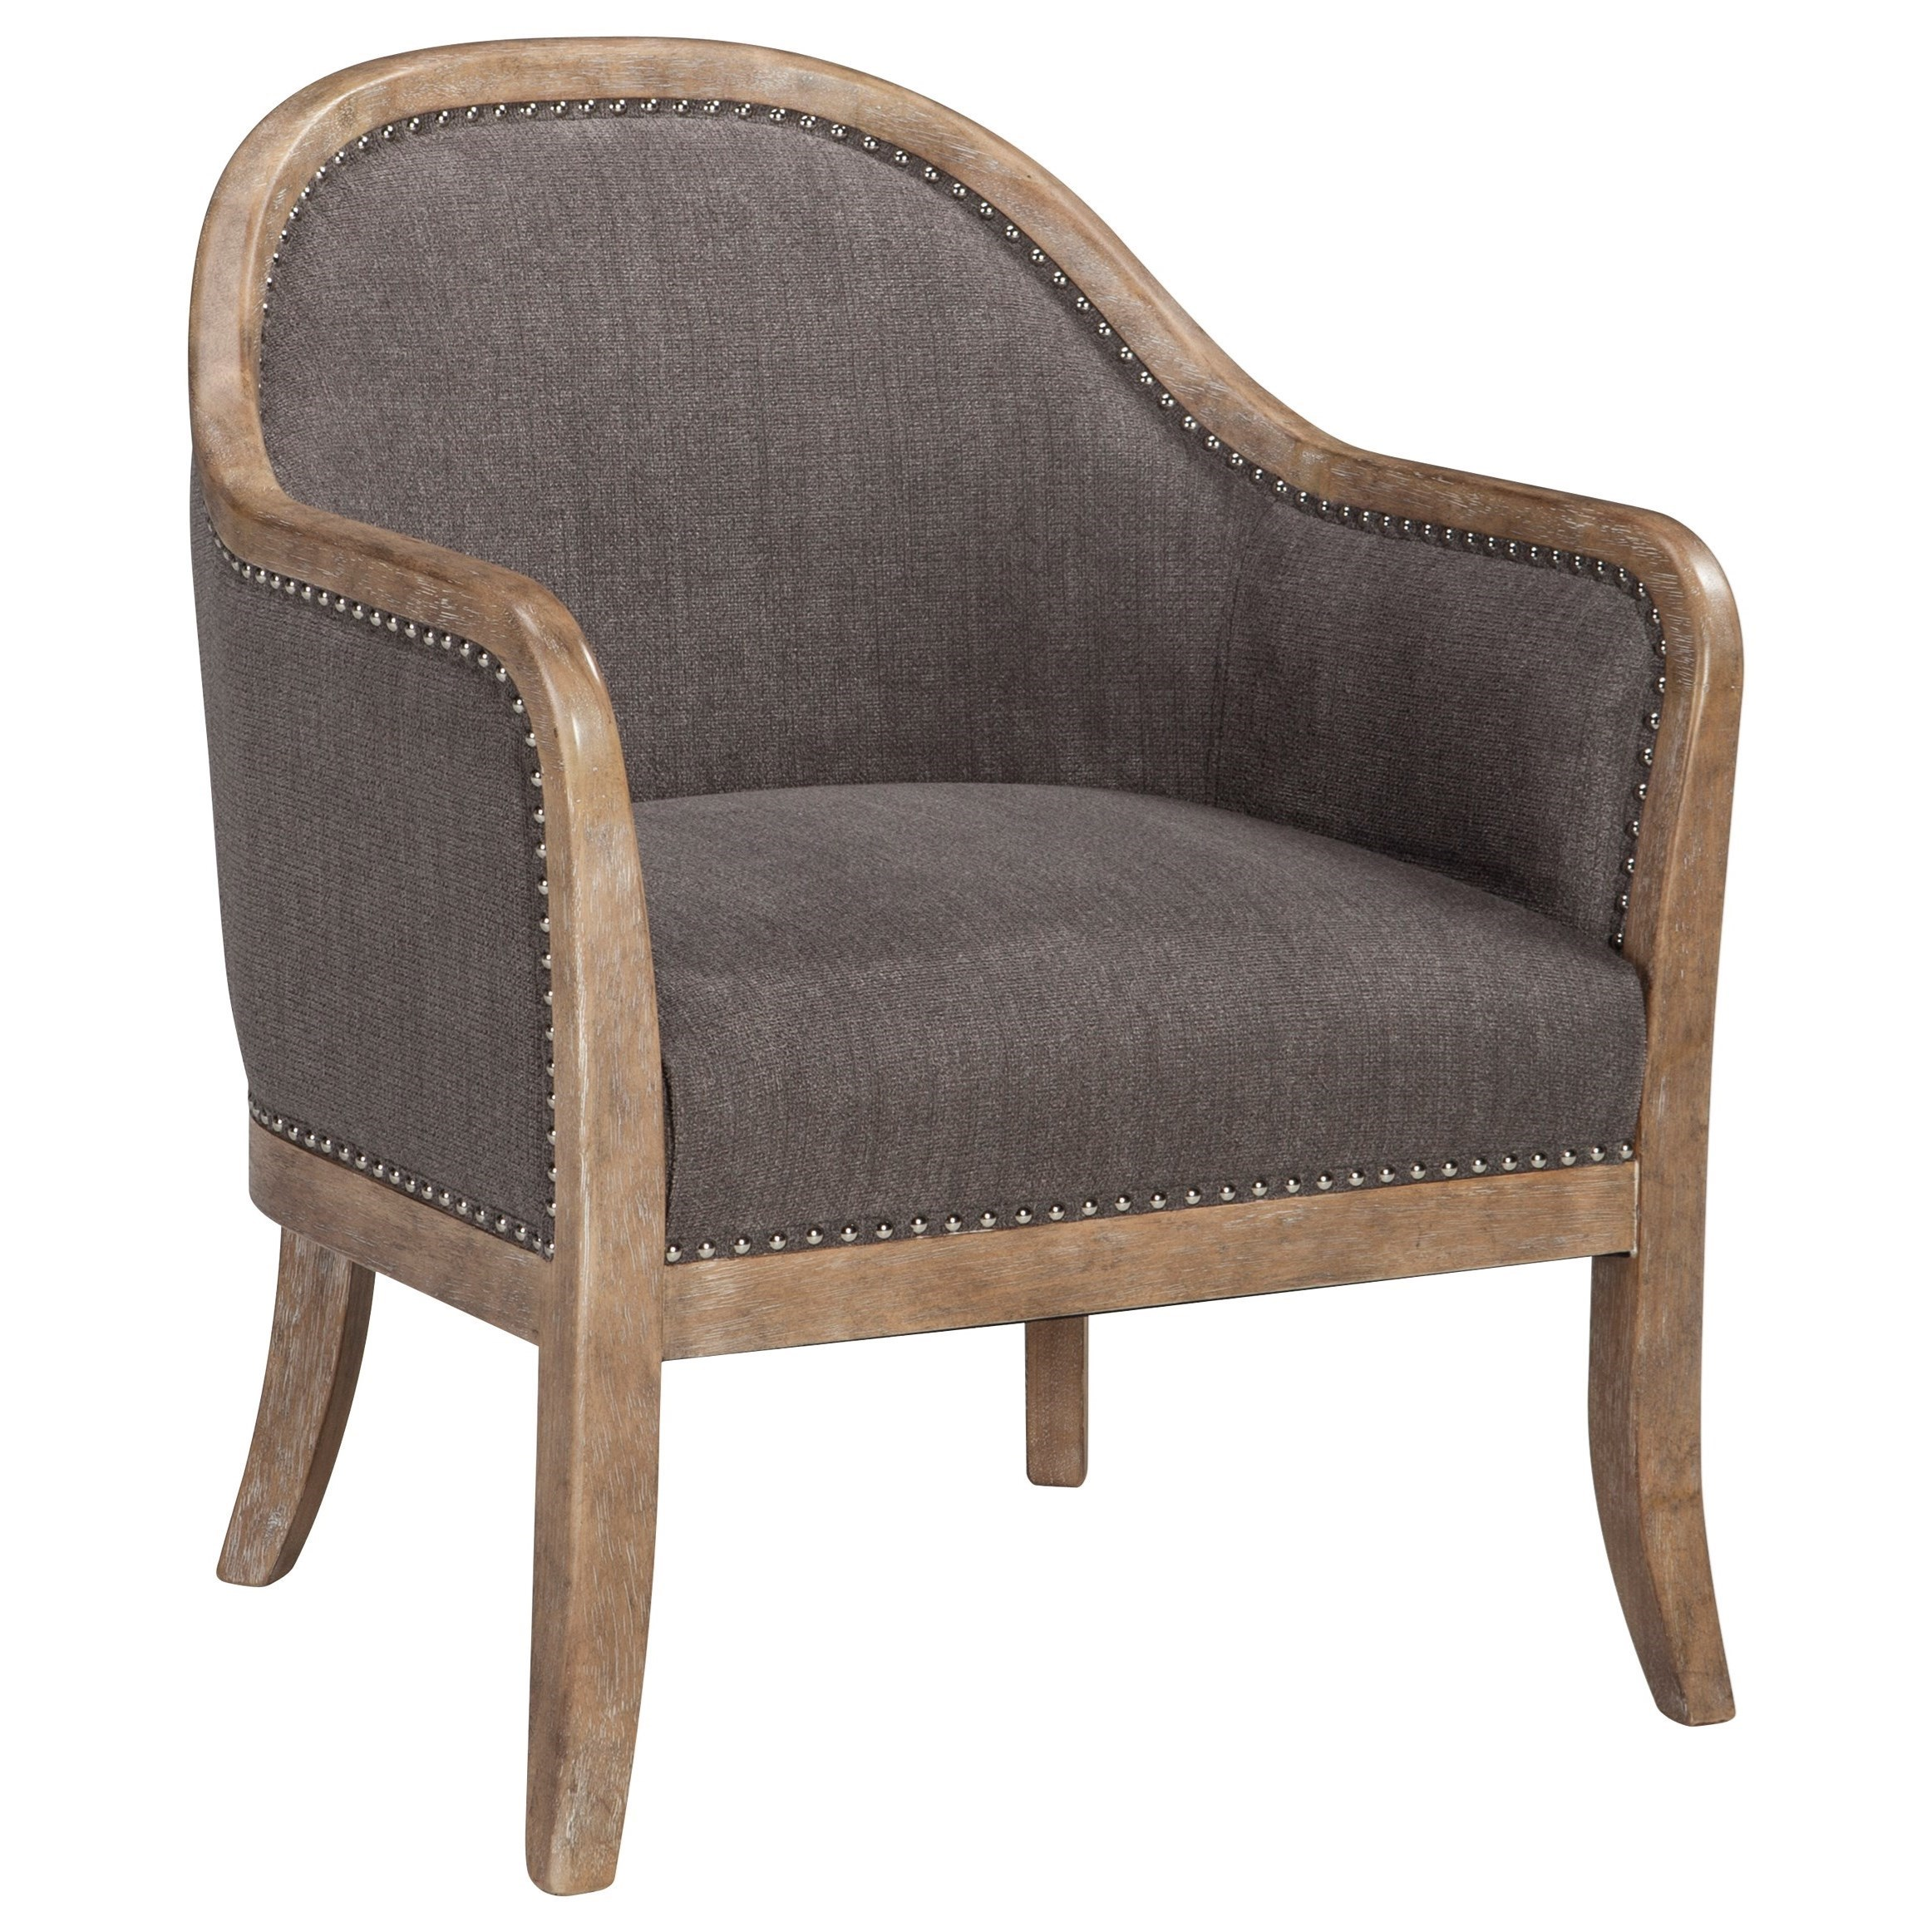 wood frame accent chairs lycra chair covers for sale uk signature design by ashley engineer a3000030 transitional with nailhead trim